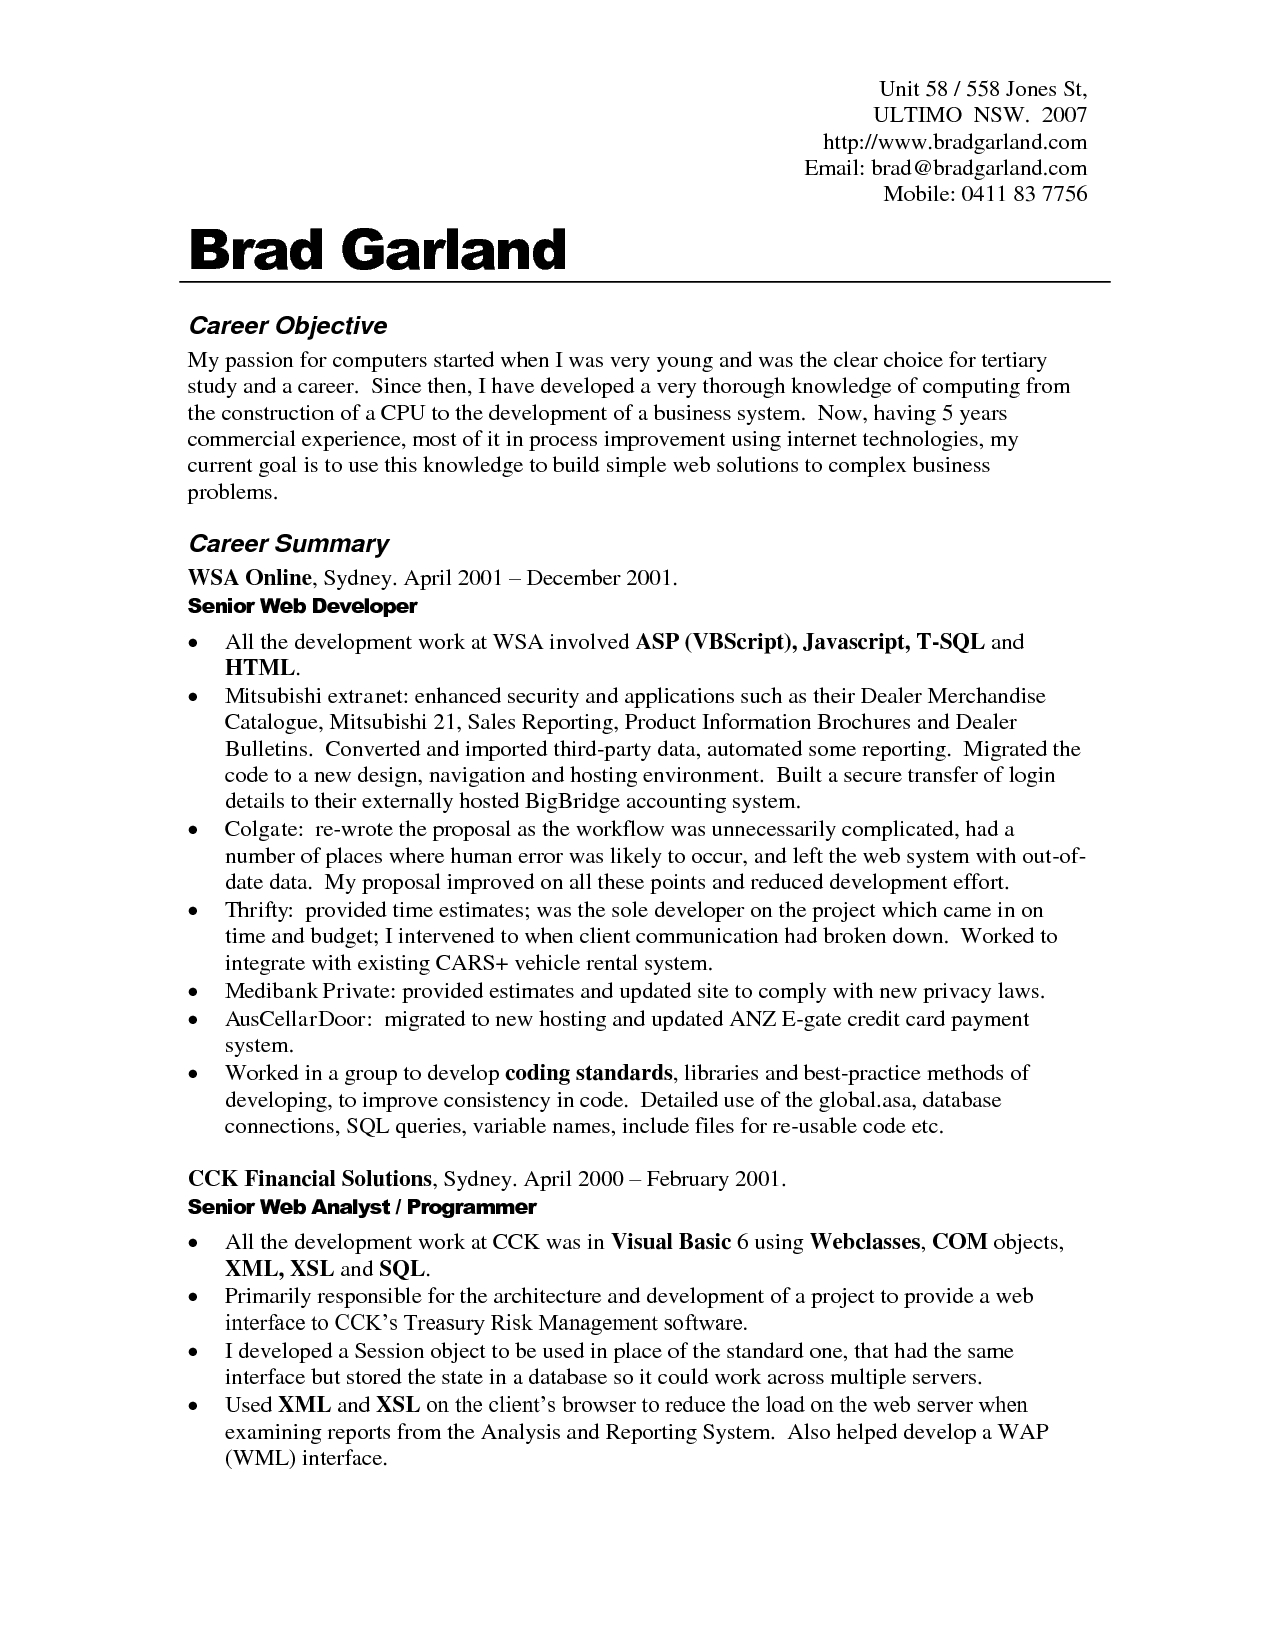 career objective samples for resume.html